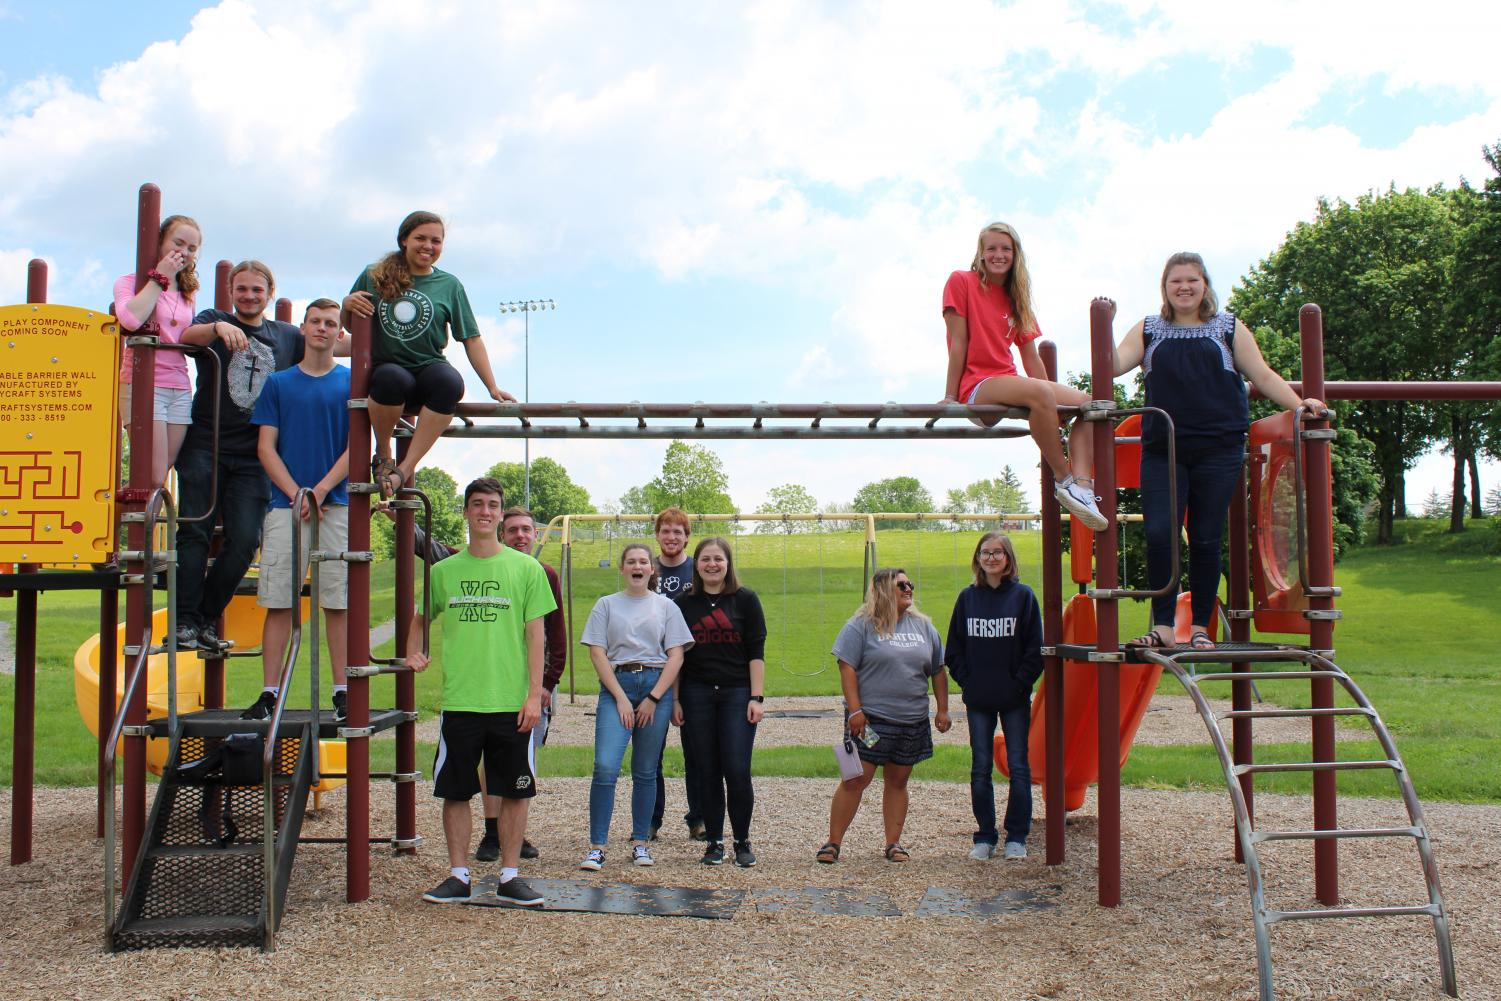 The ap chemistry class poses for a picture on the playground at St. Thomas Elementary. Carlee Jackson (11), Tanner Myers (11), Jordan Harbold (11), Alyssa Blair (12), Daniel Corcoran (12), Trenton Morgan (12), Amanda Sensinger (11), Dale MIller (12), Mackenzie Saunders (11), Alyssa Velasquez-Glant (12), Kayla Noll-Bader (12), Ella Jones (12), and Abby Carbaugh (12)